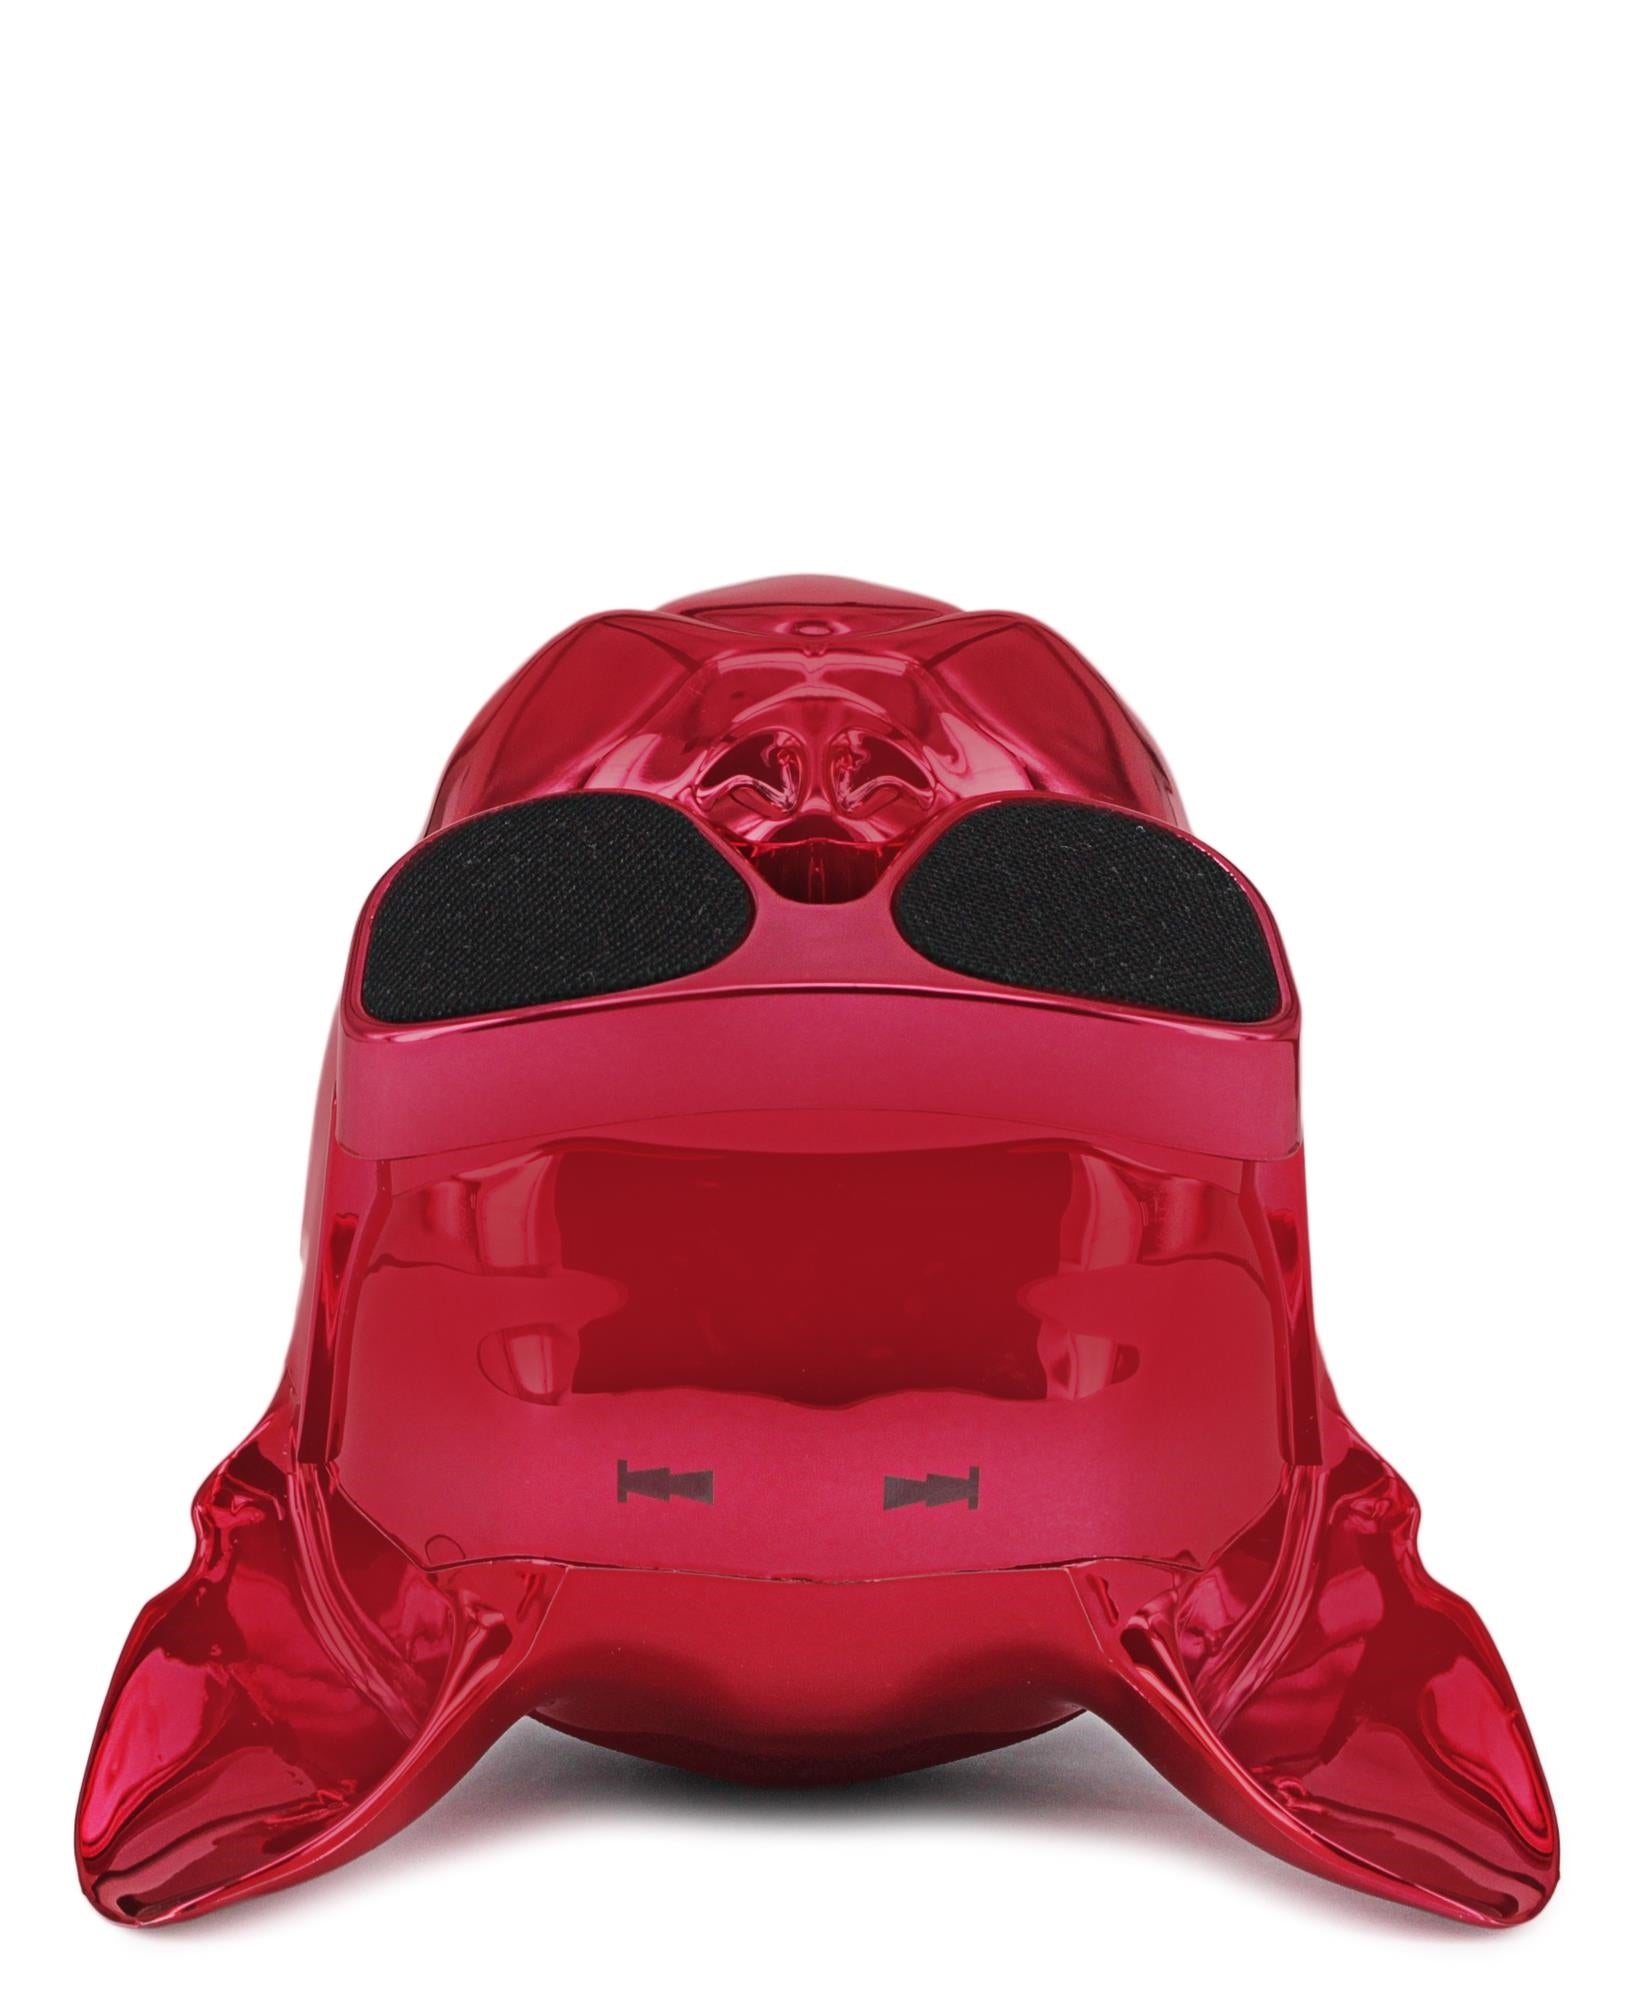 Dog Head Bluetooth Speaker - Red